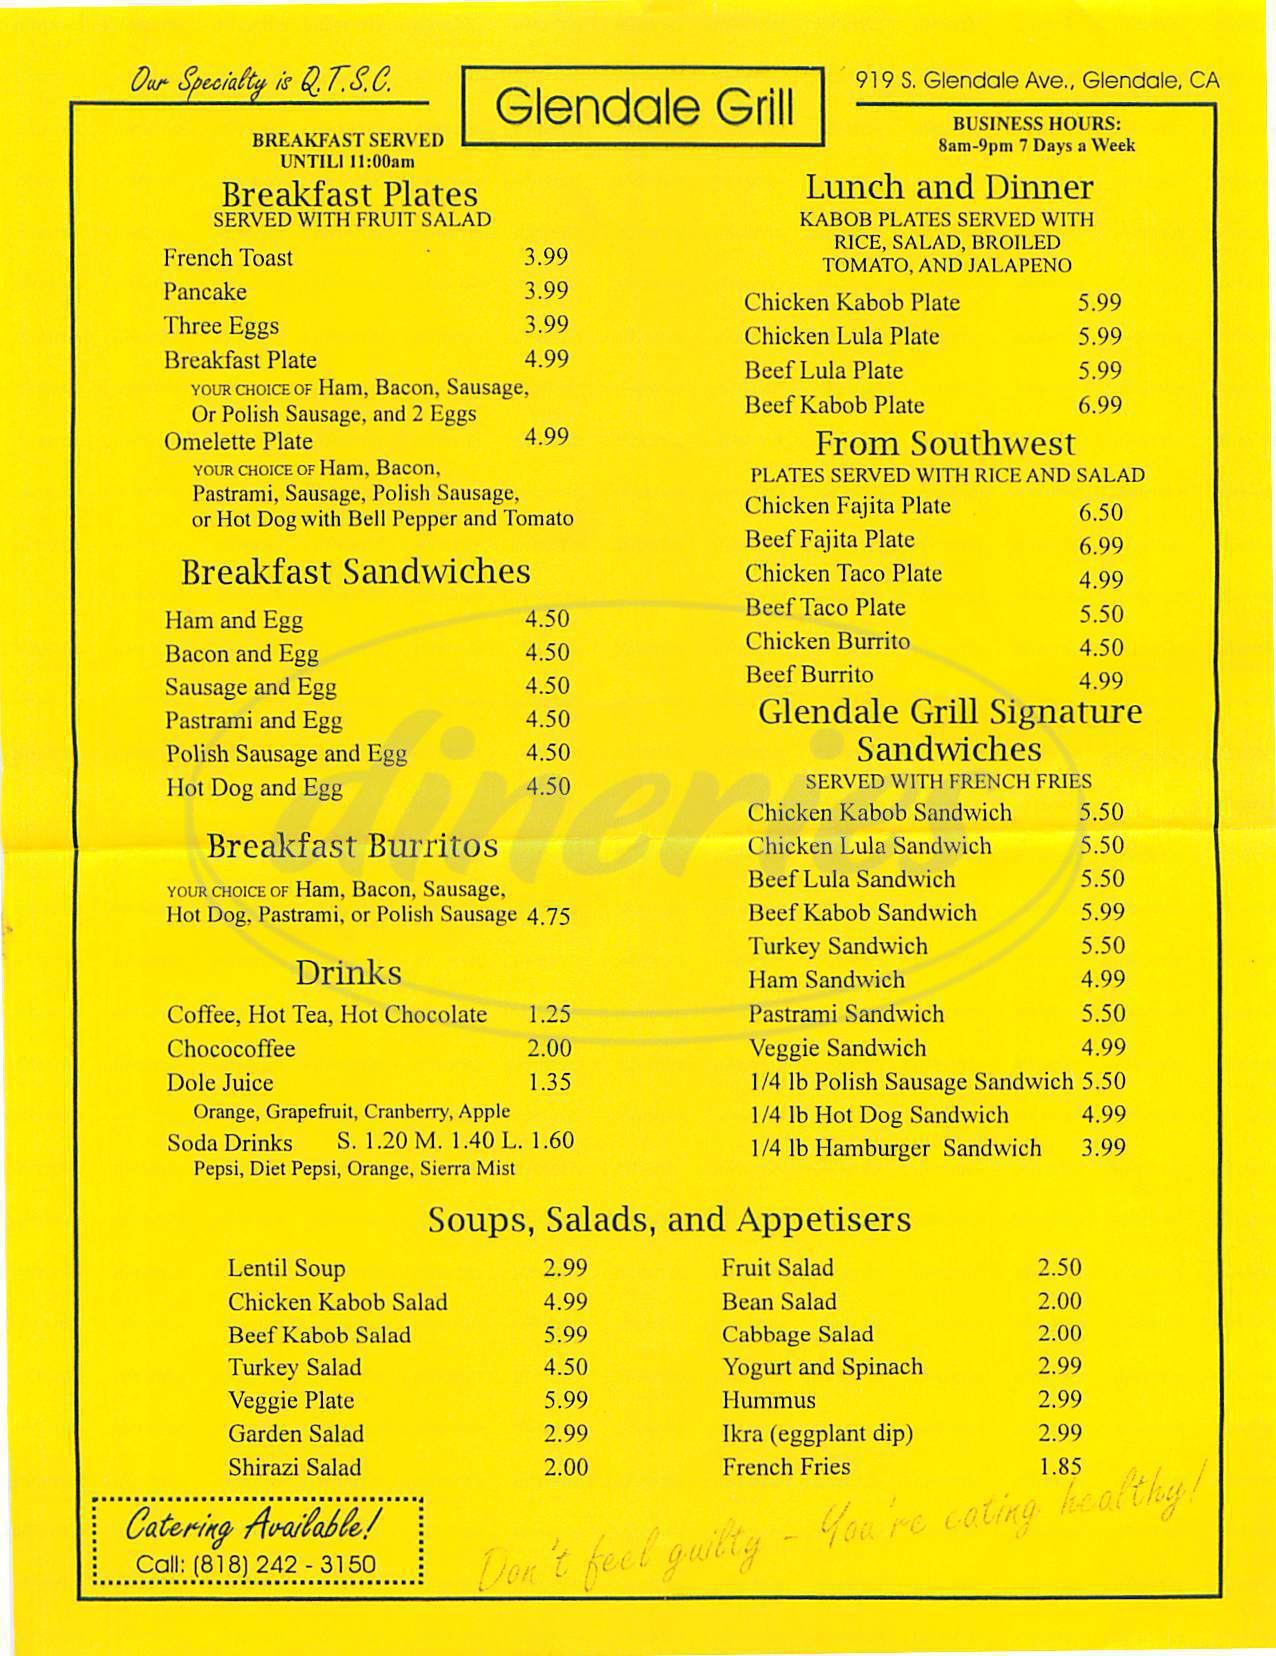 menu for Glendale Grill